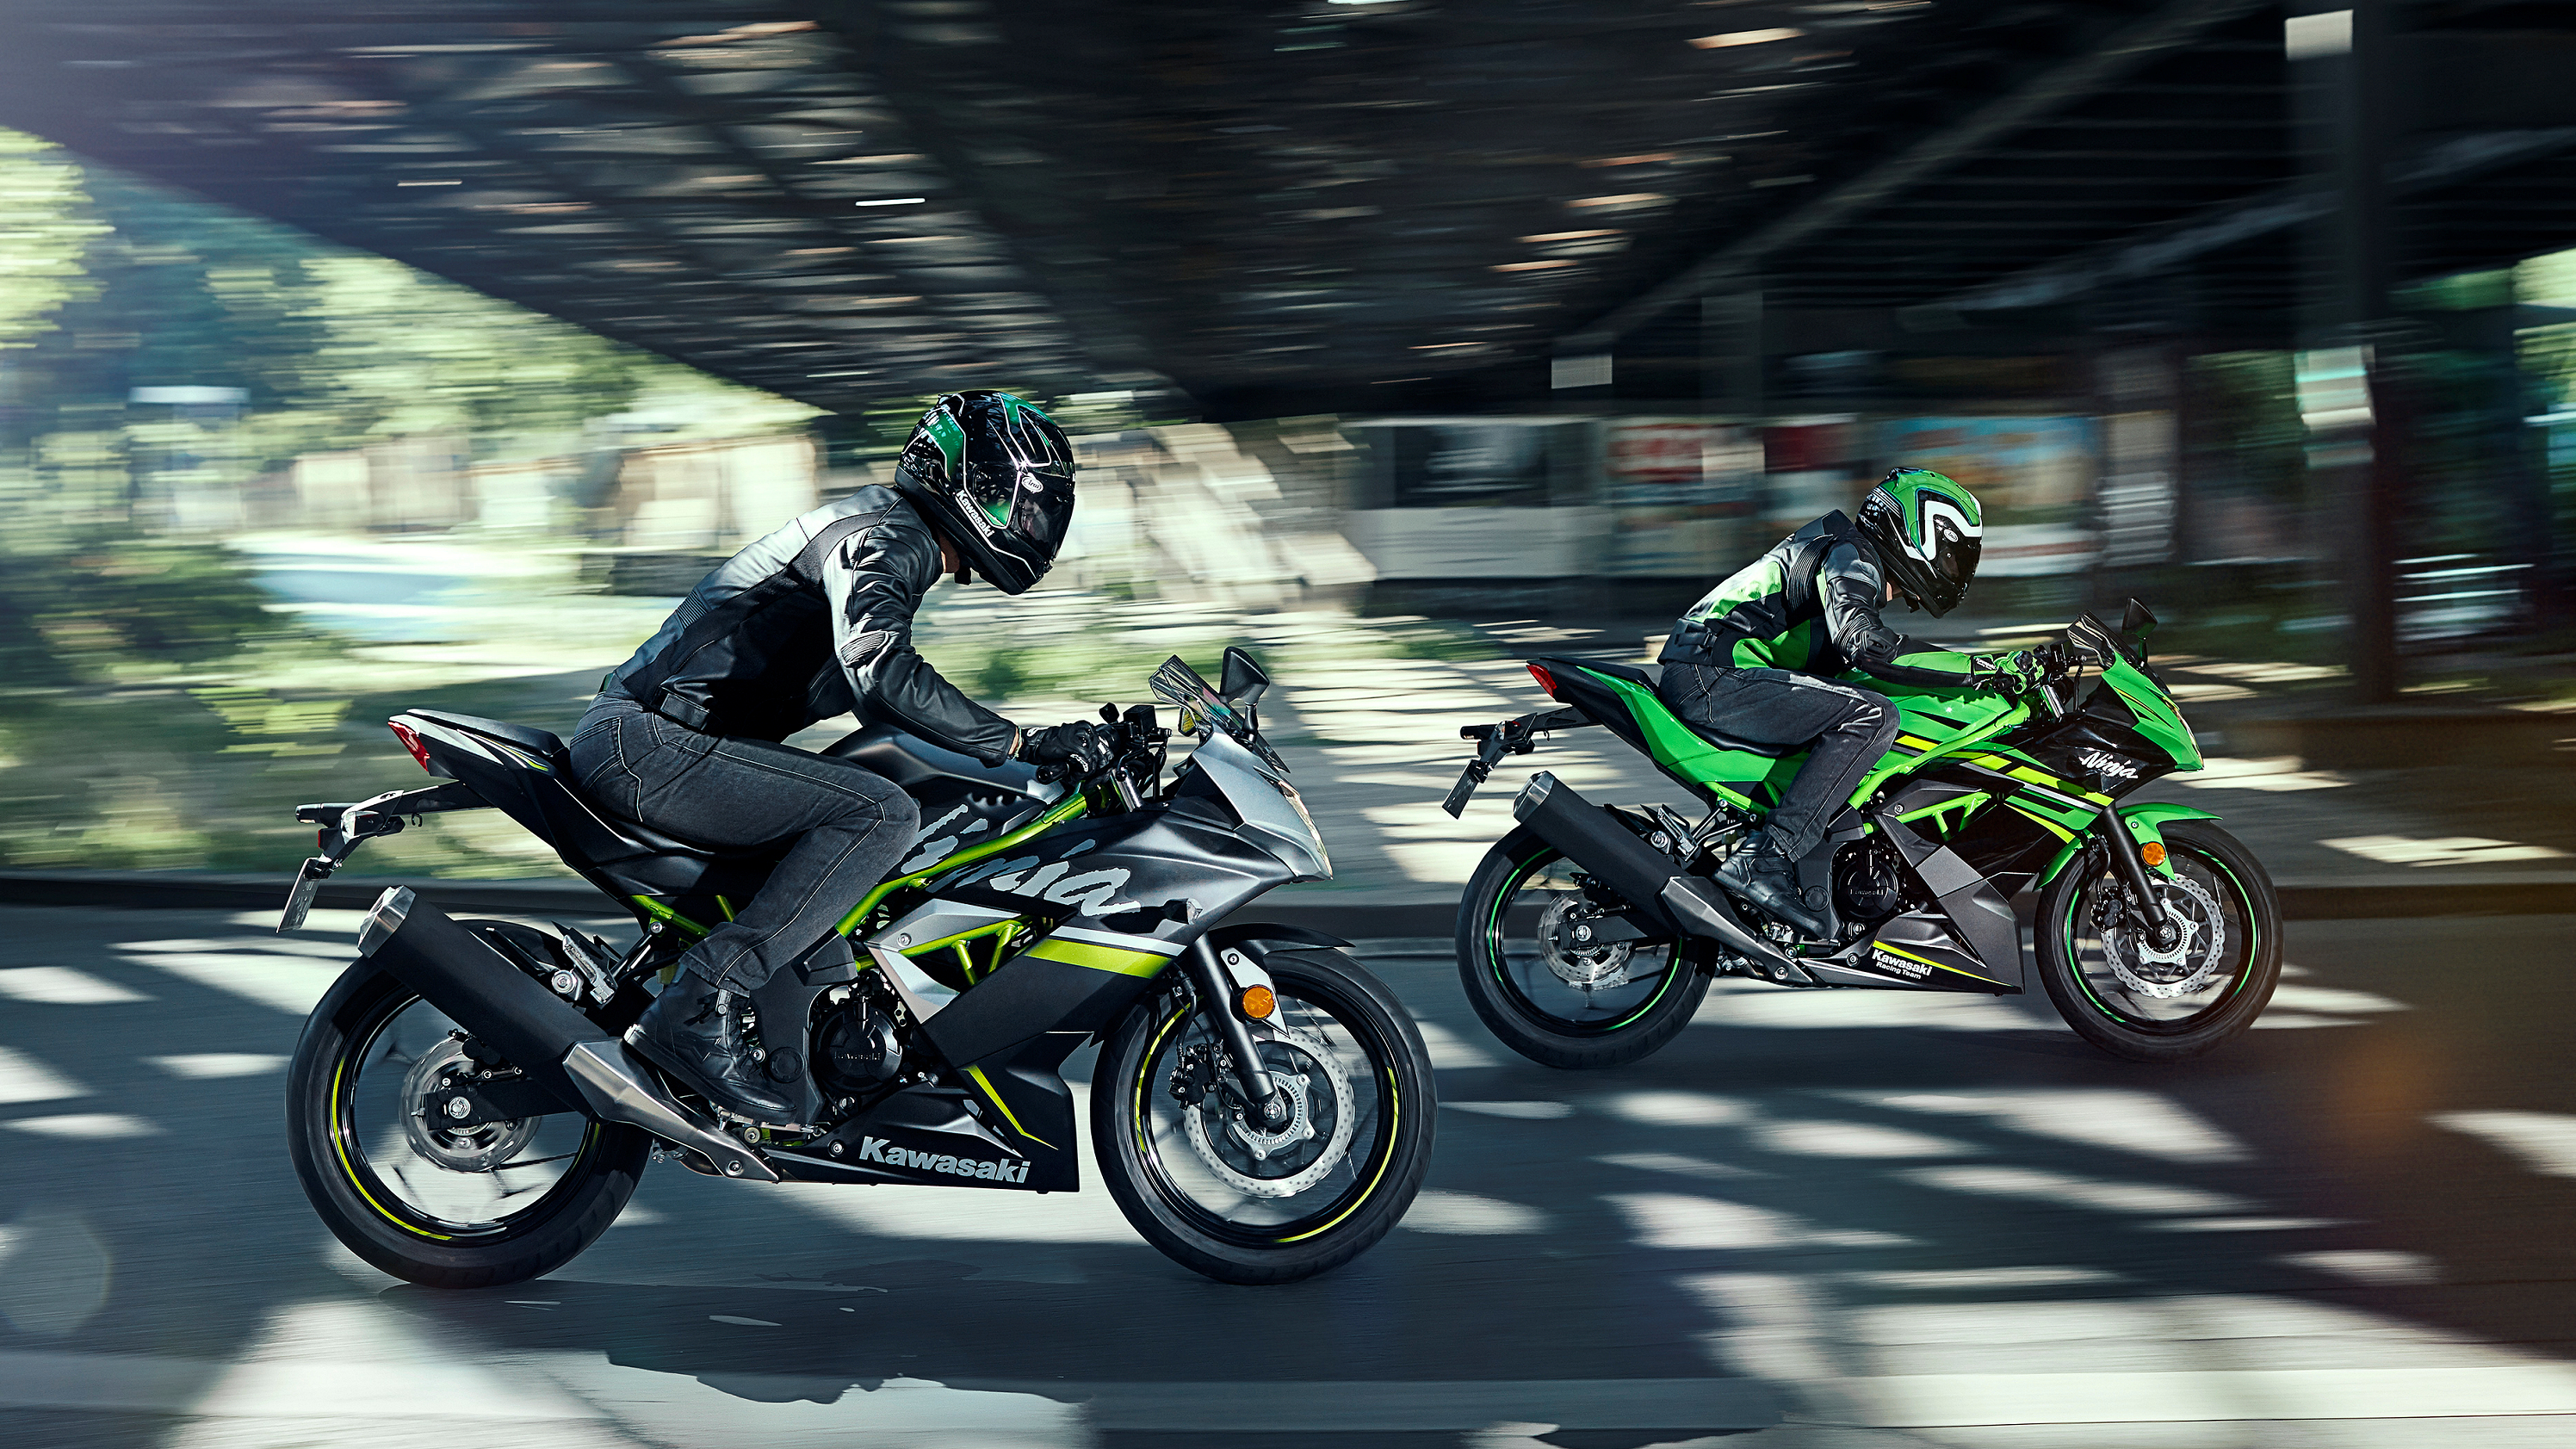 2019 Kawasaki Ninja 125 Top Speed